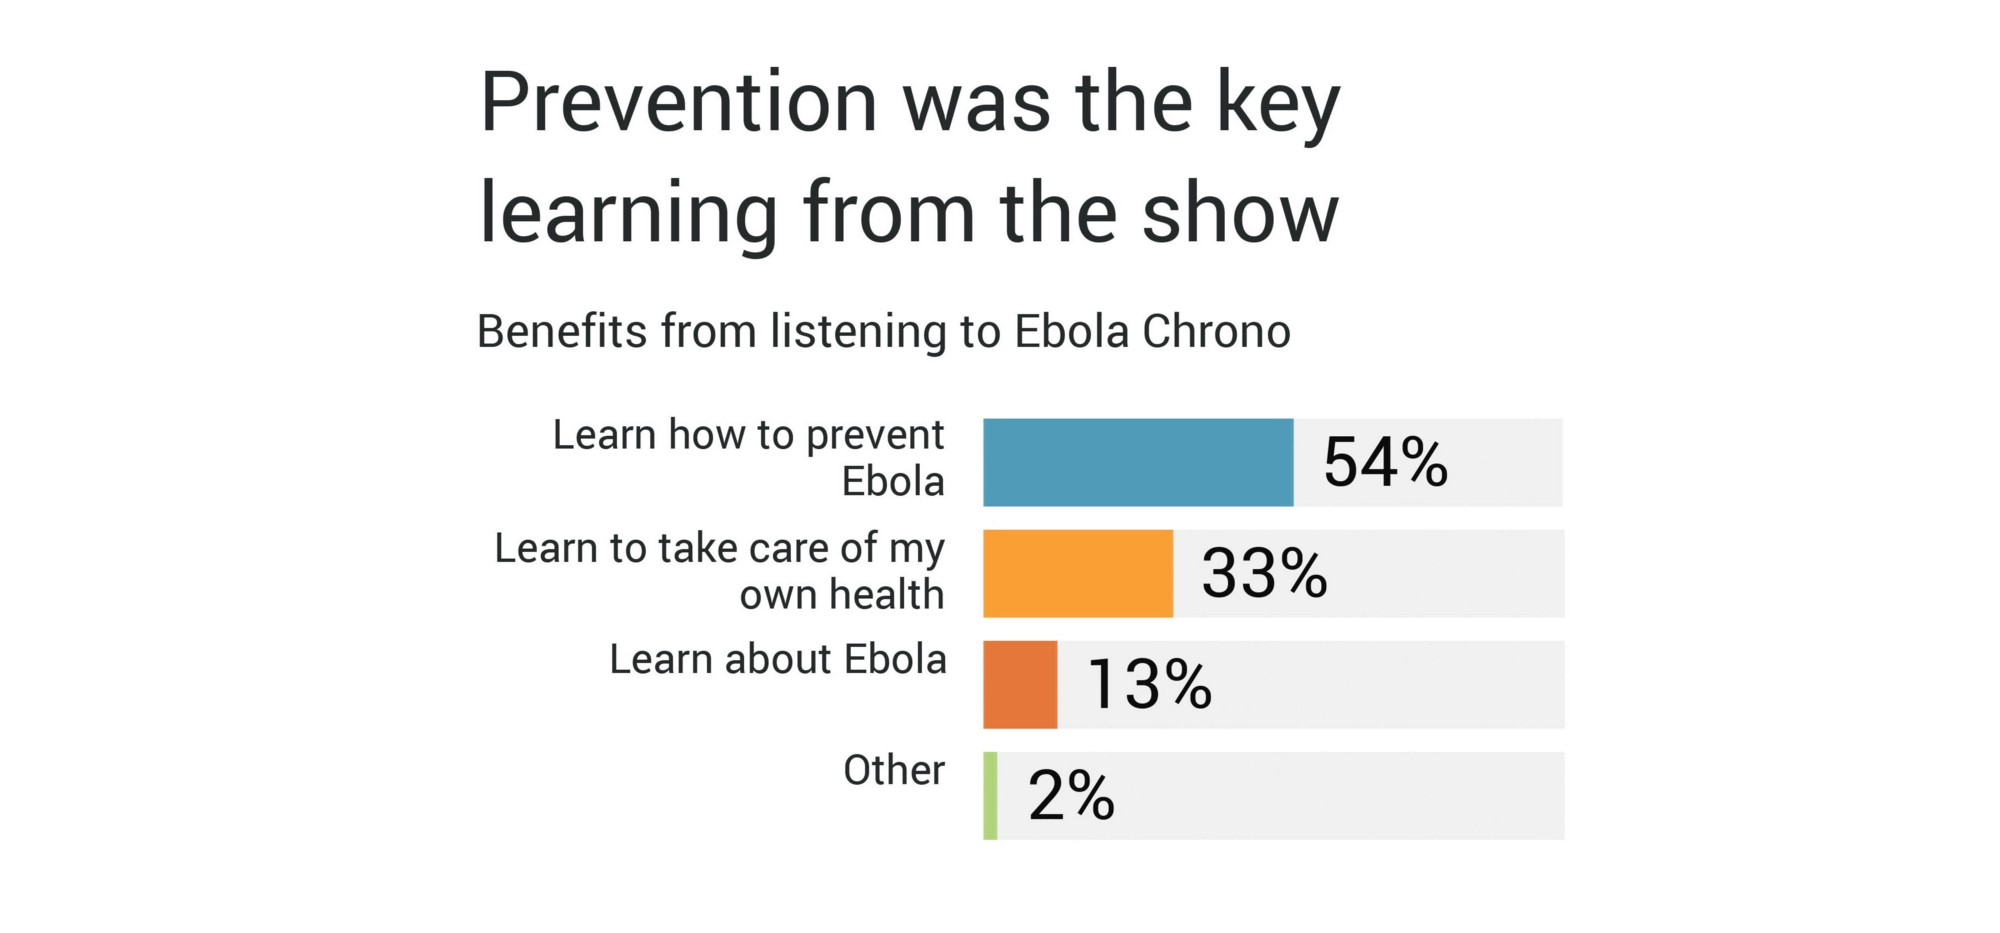 Bar graph showing that prevention was the key learning from the show